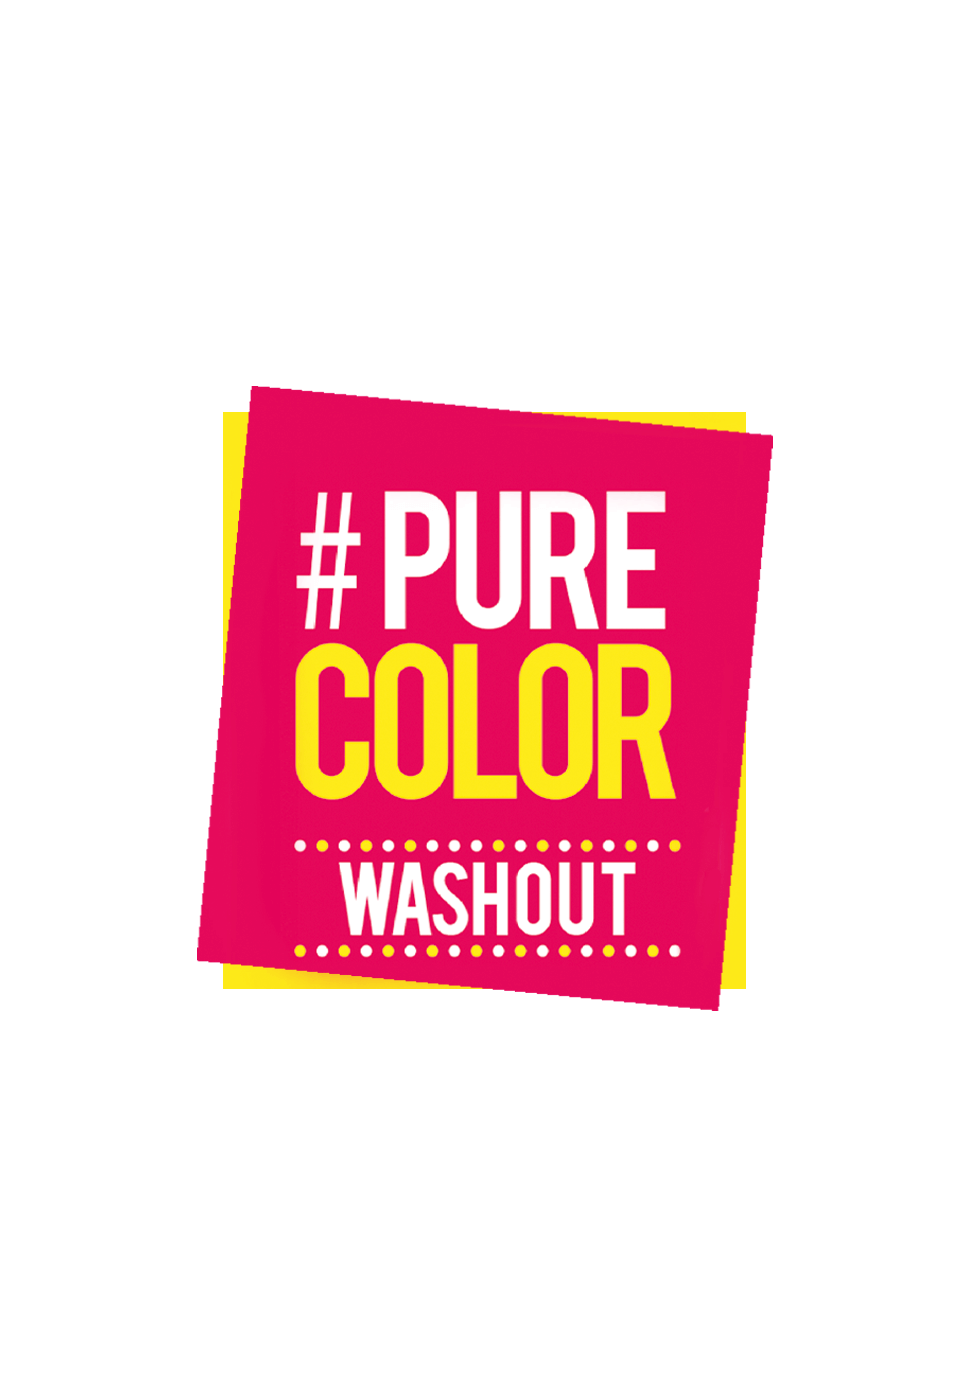 pure_color_com_washout_logo_970x1400